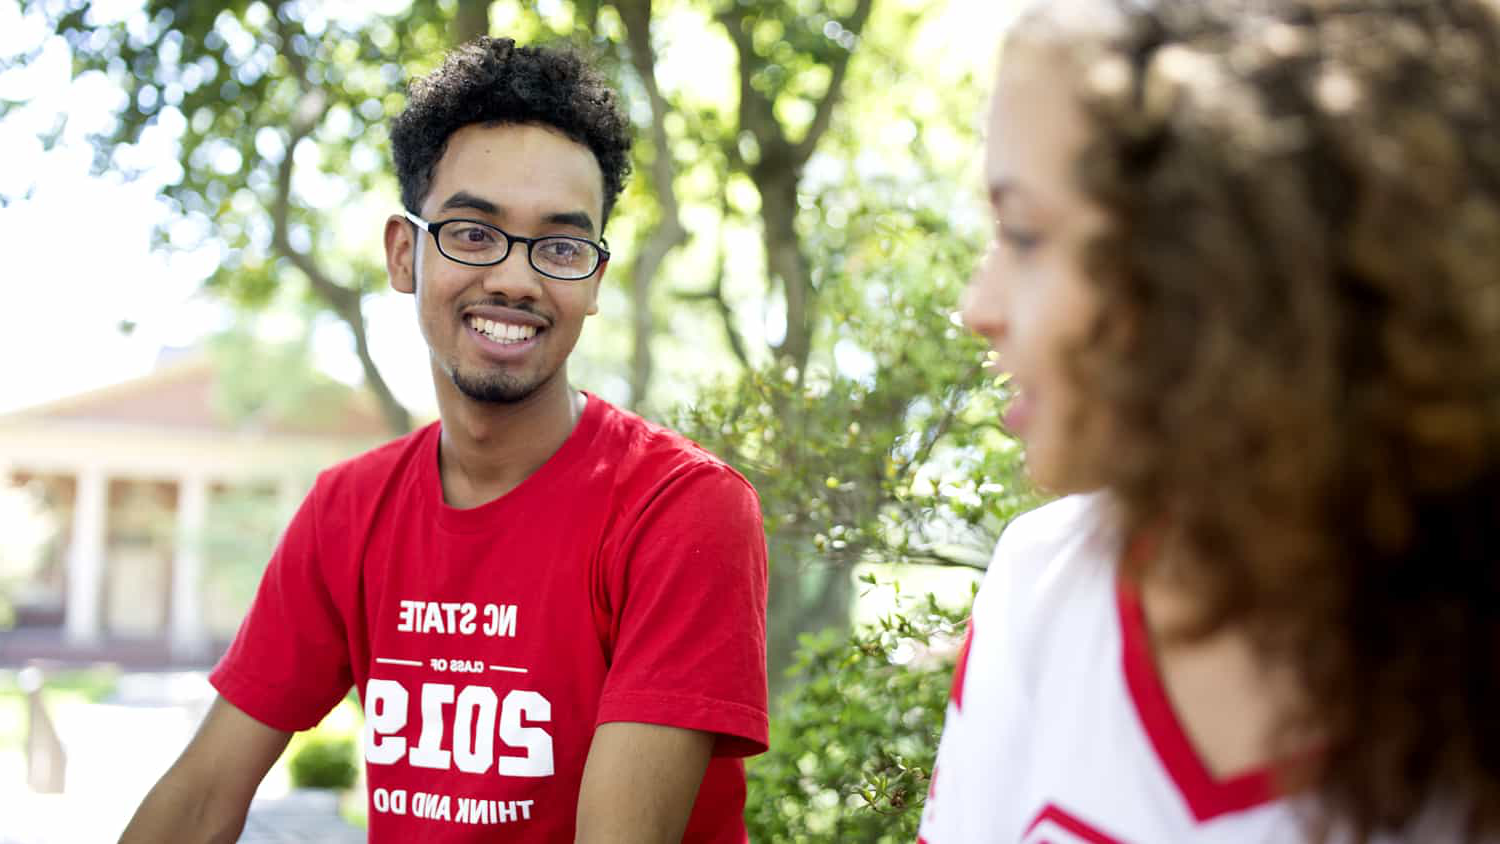 Diverse students talking on campus